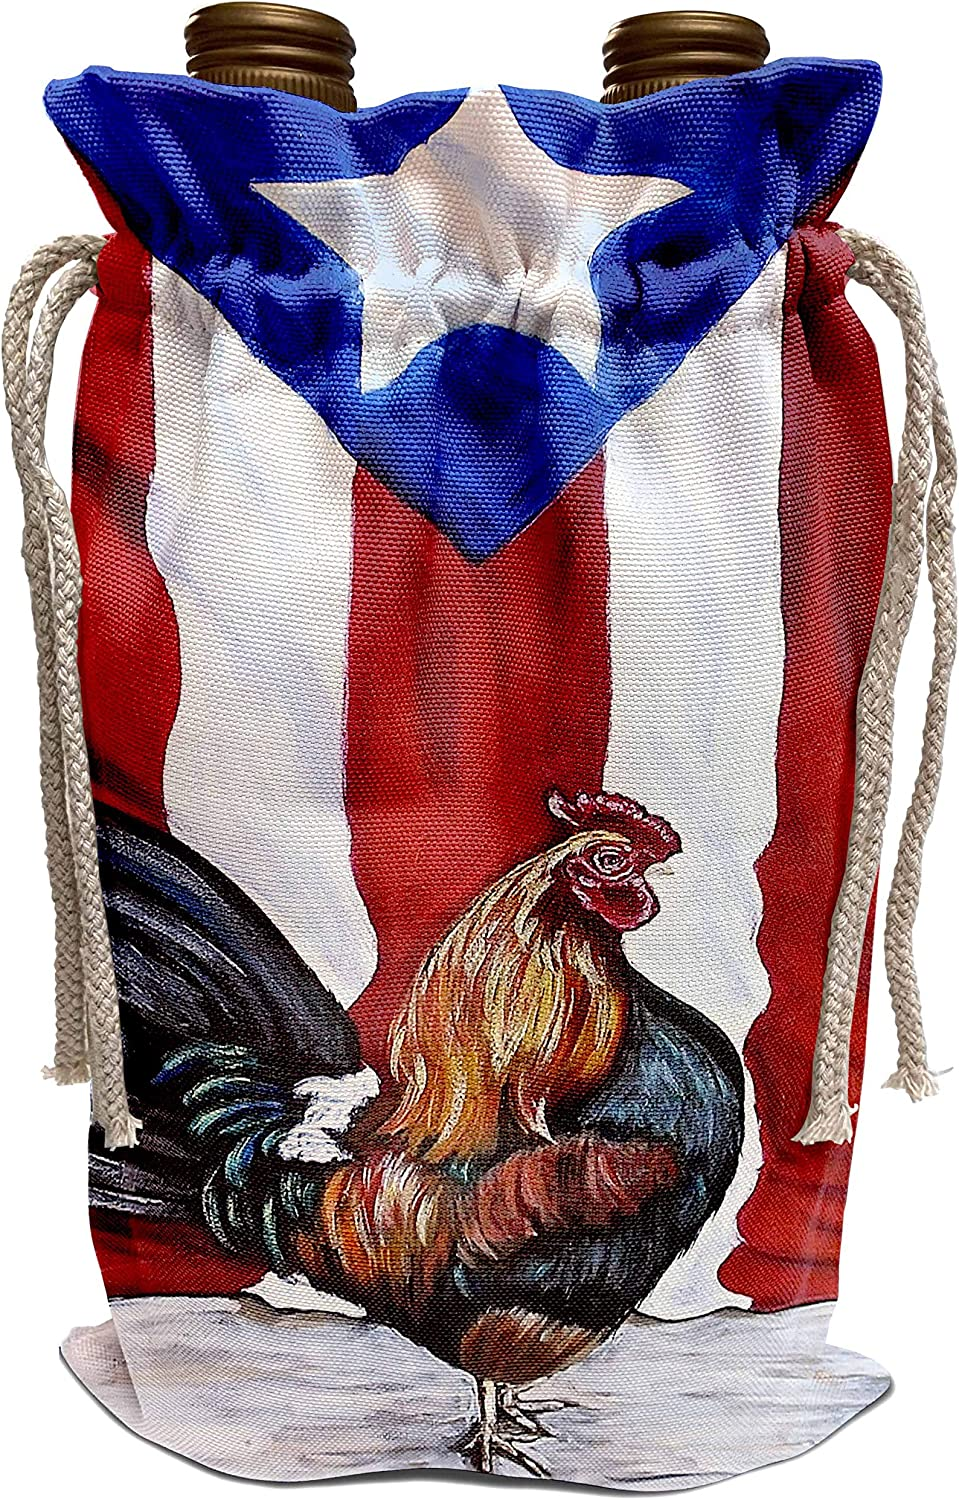 3dRose Melissa A. Torres Puerto Rican Art - Rooster with Puerto Rican Flag - Wine Bag (wbg_186792_1)